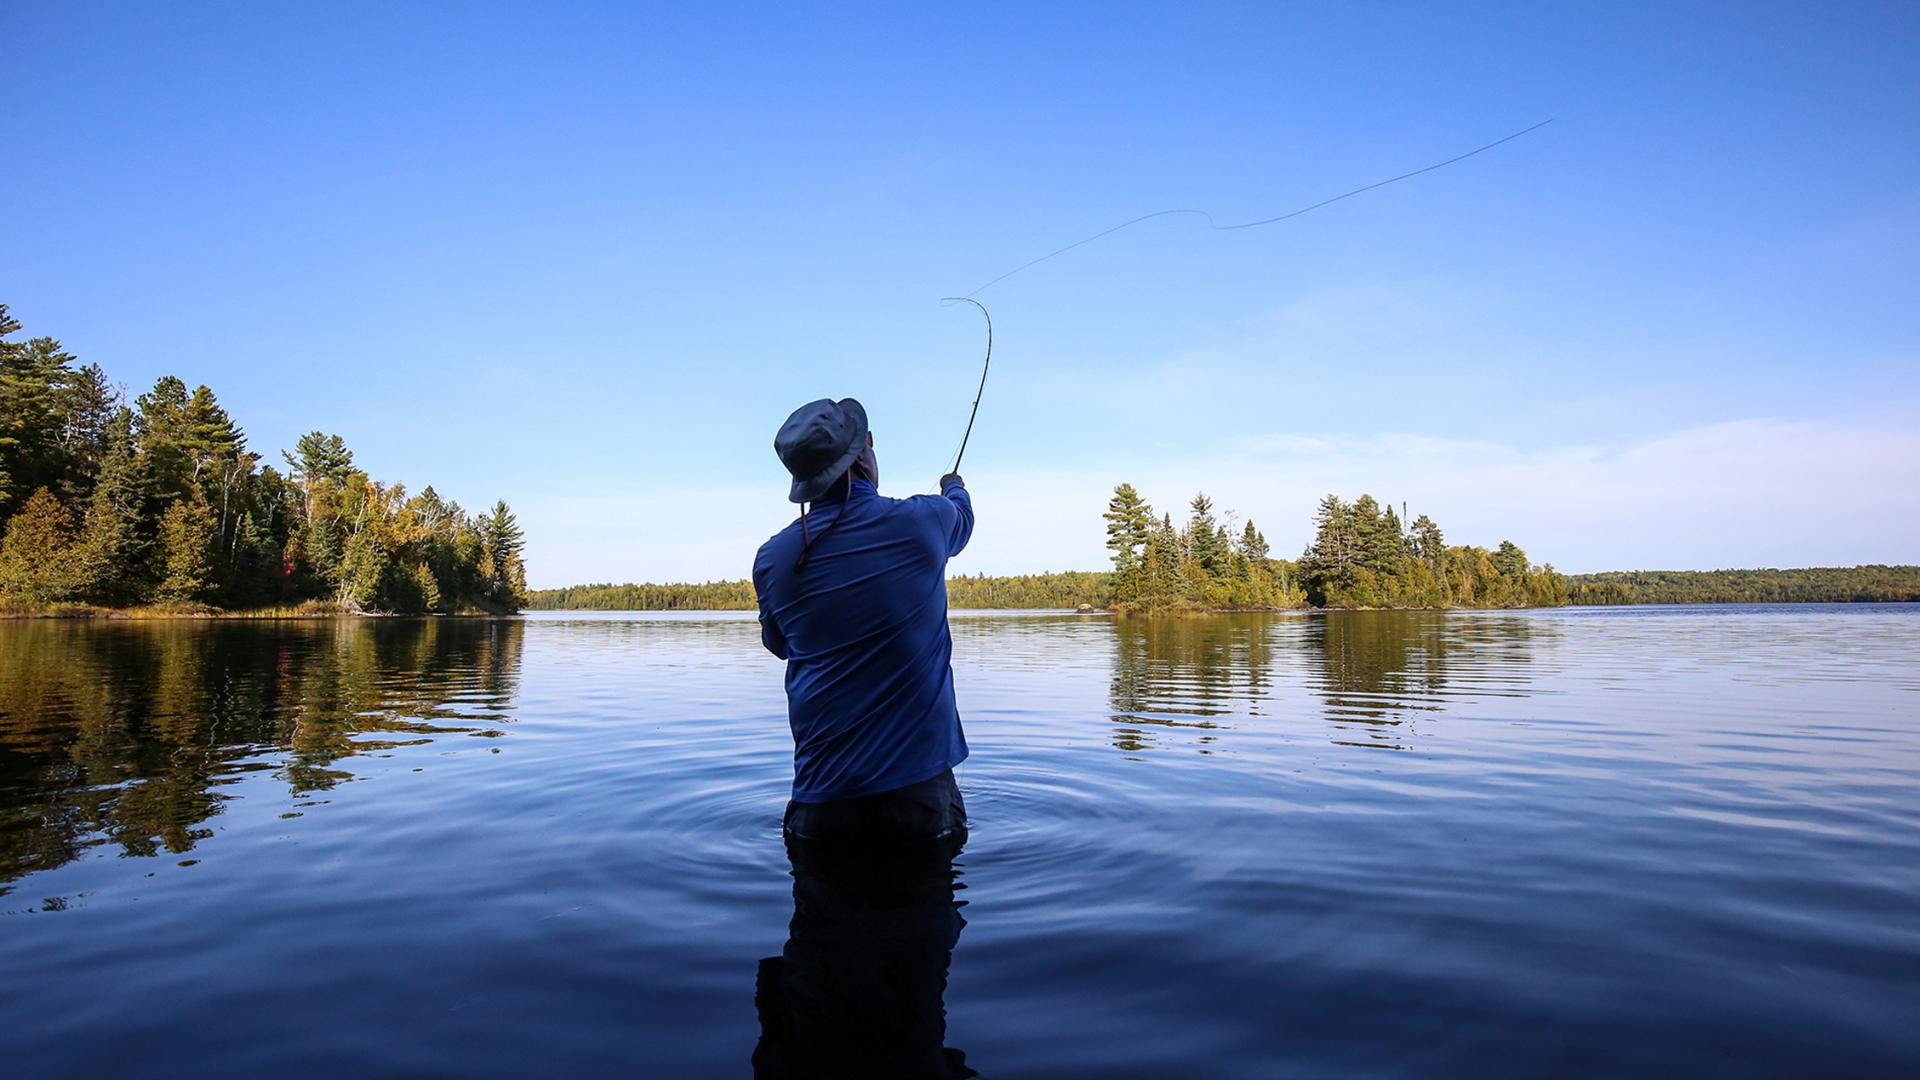 Fly fishing in the clear waters of Superior National Forest